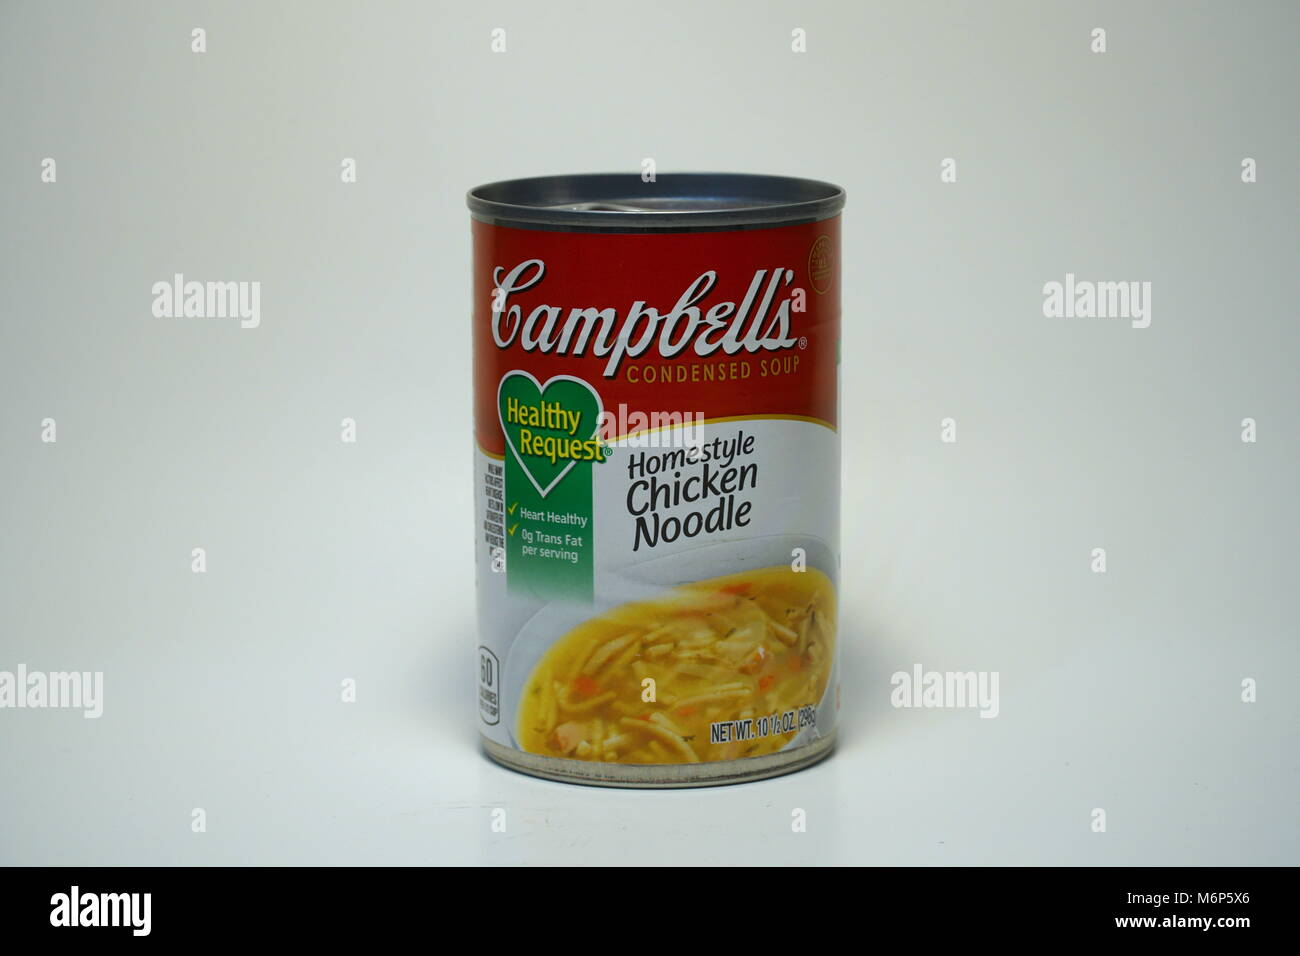 campbells chicken noodle soup can. isolated product vertical frame